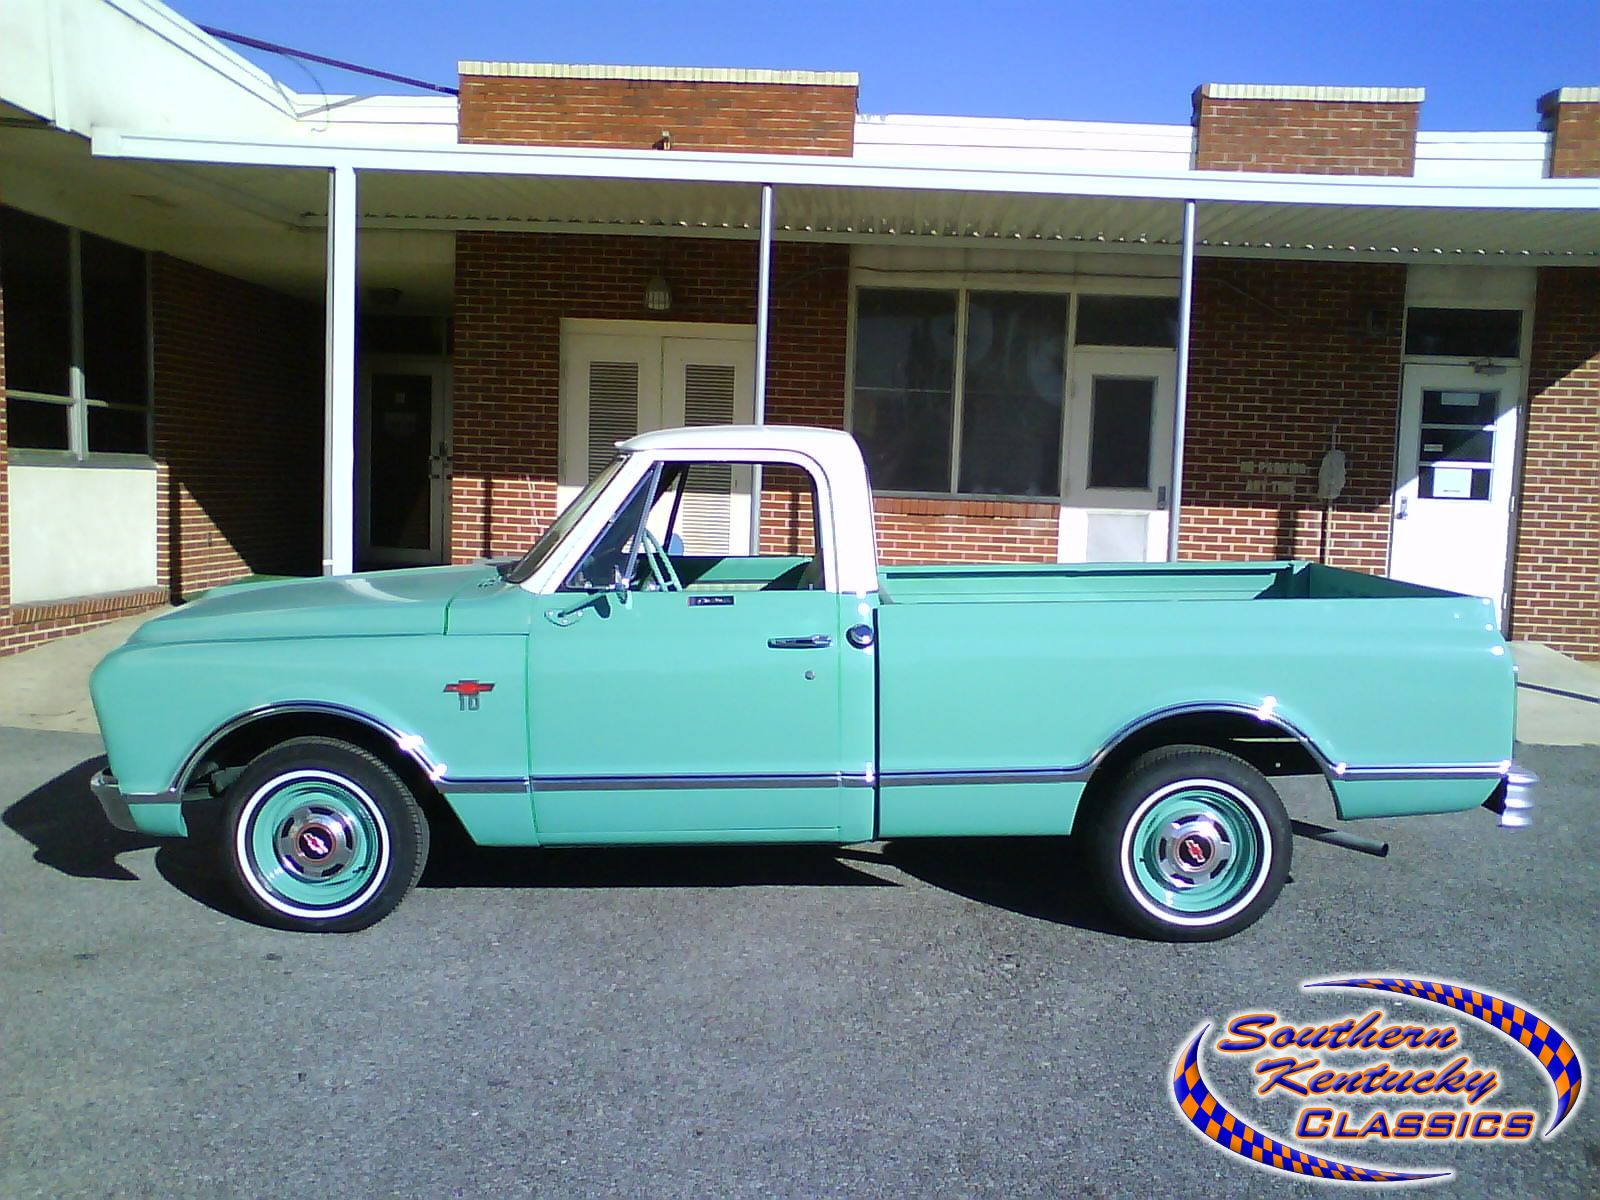 The 25 best 1967 c10 ideas on pinterest c10 chevy truck 1967 chevy truck and chevy c10